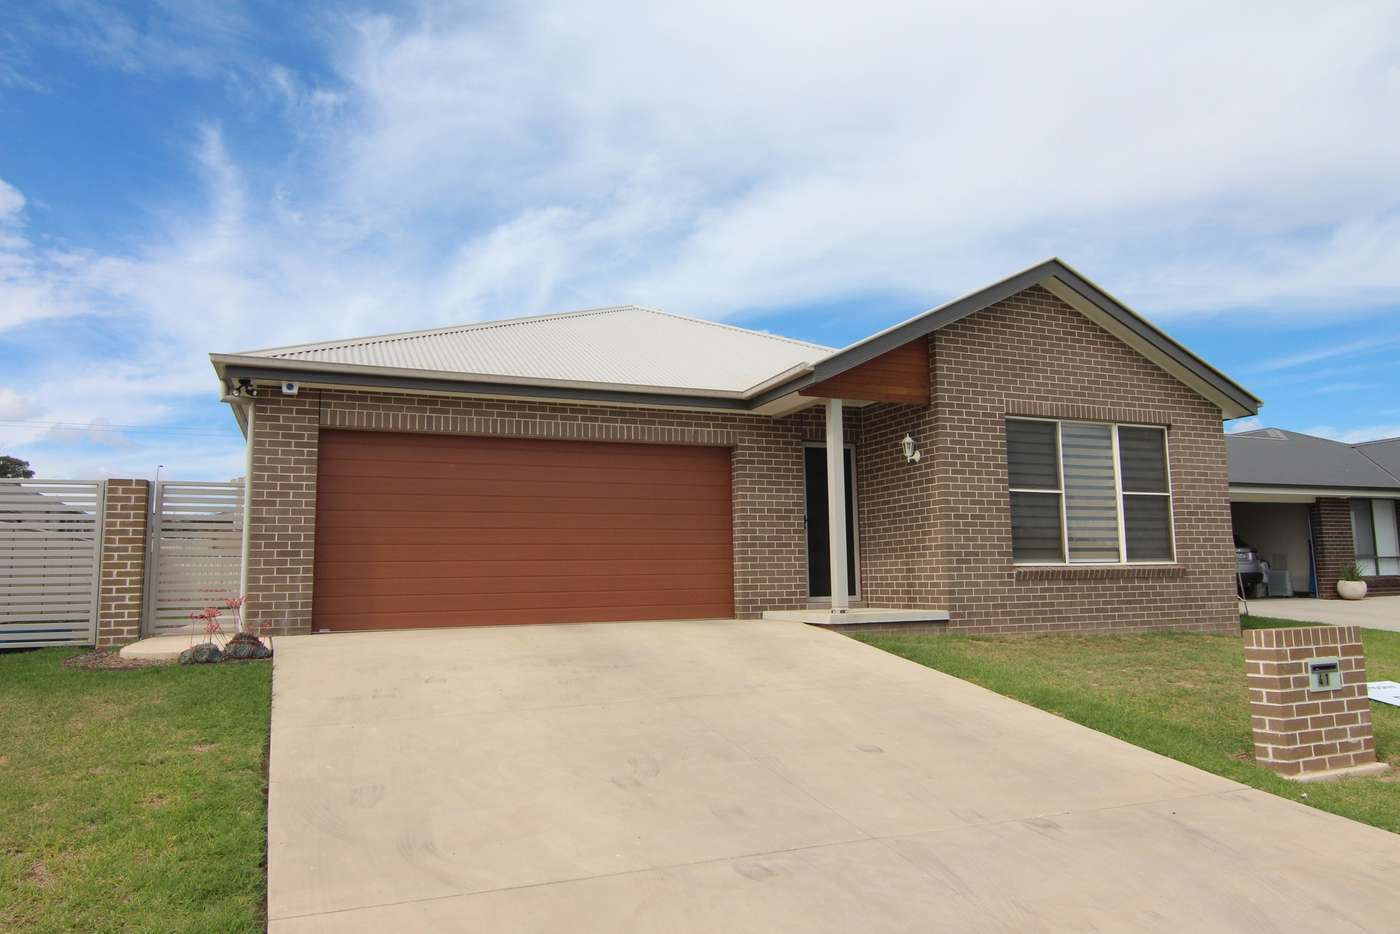 Main view of Homely house listing, 41 Clem Mcfawn Place, Orange NSW 2800